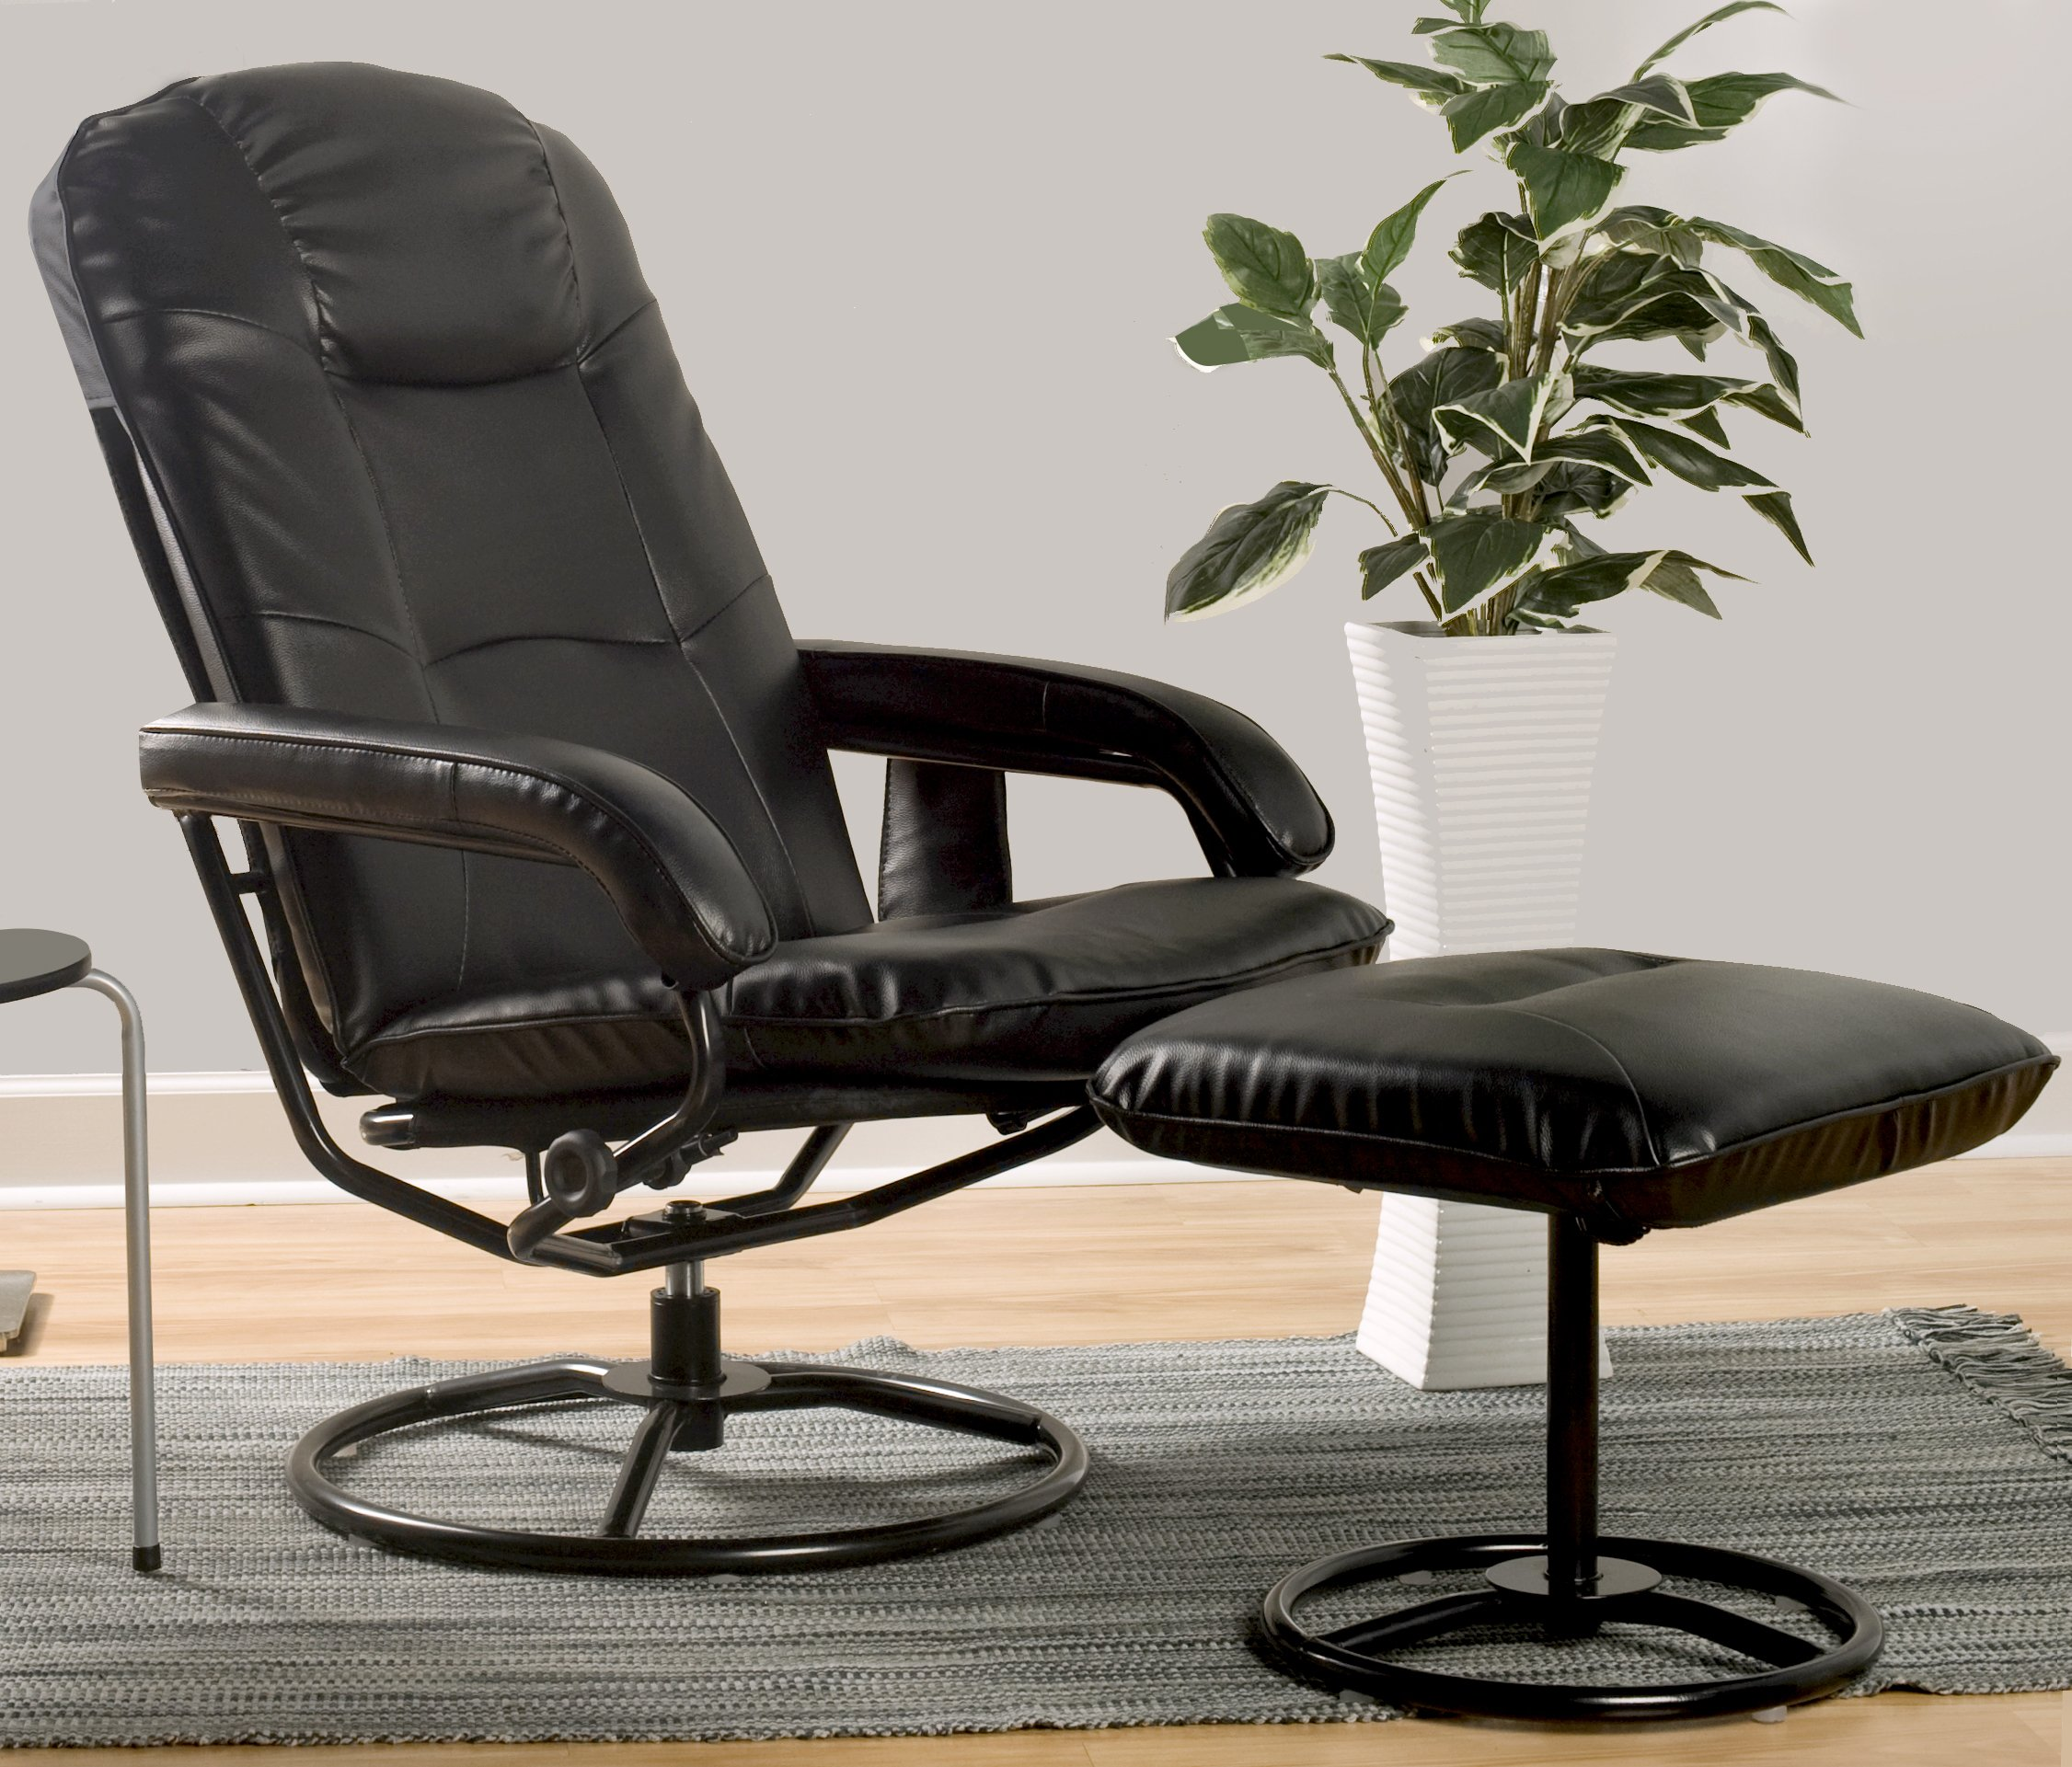 Comfort Products 60-0582 Leisure Recliner Chair with 10-Motor Massage & Heat, Black by Comfort Products (Image #5)